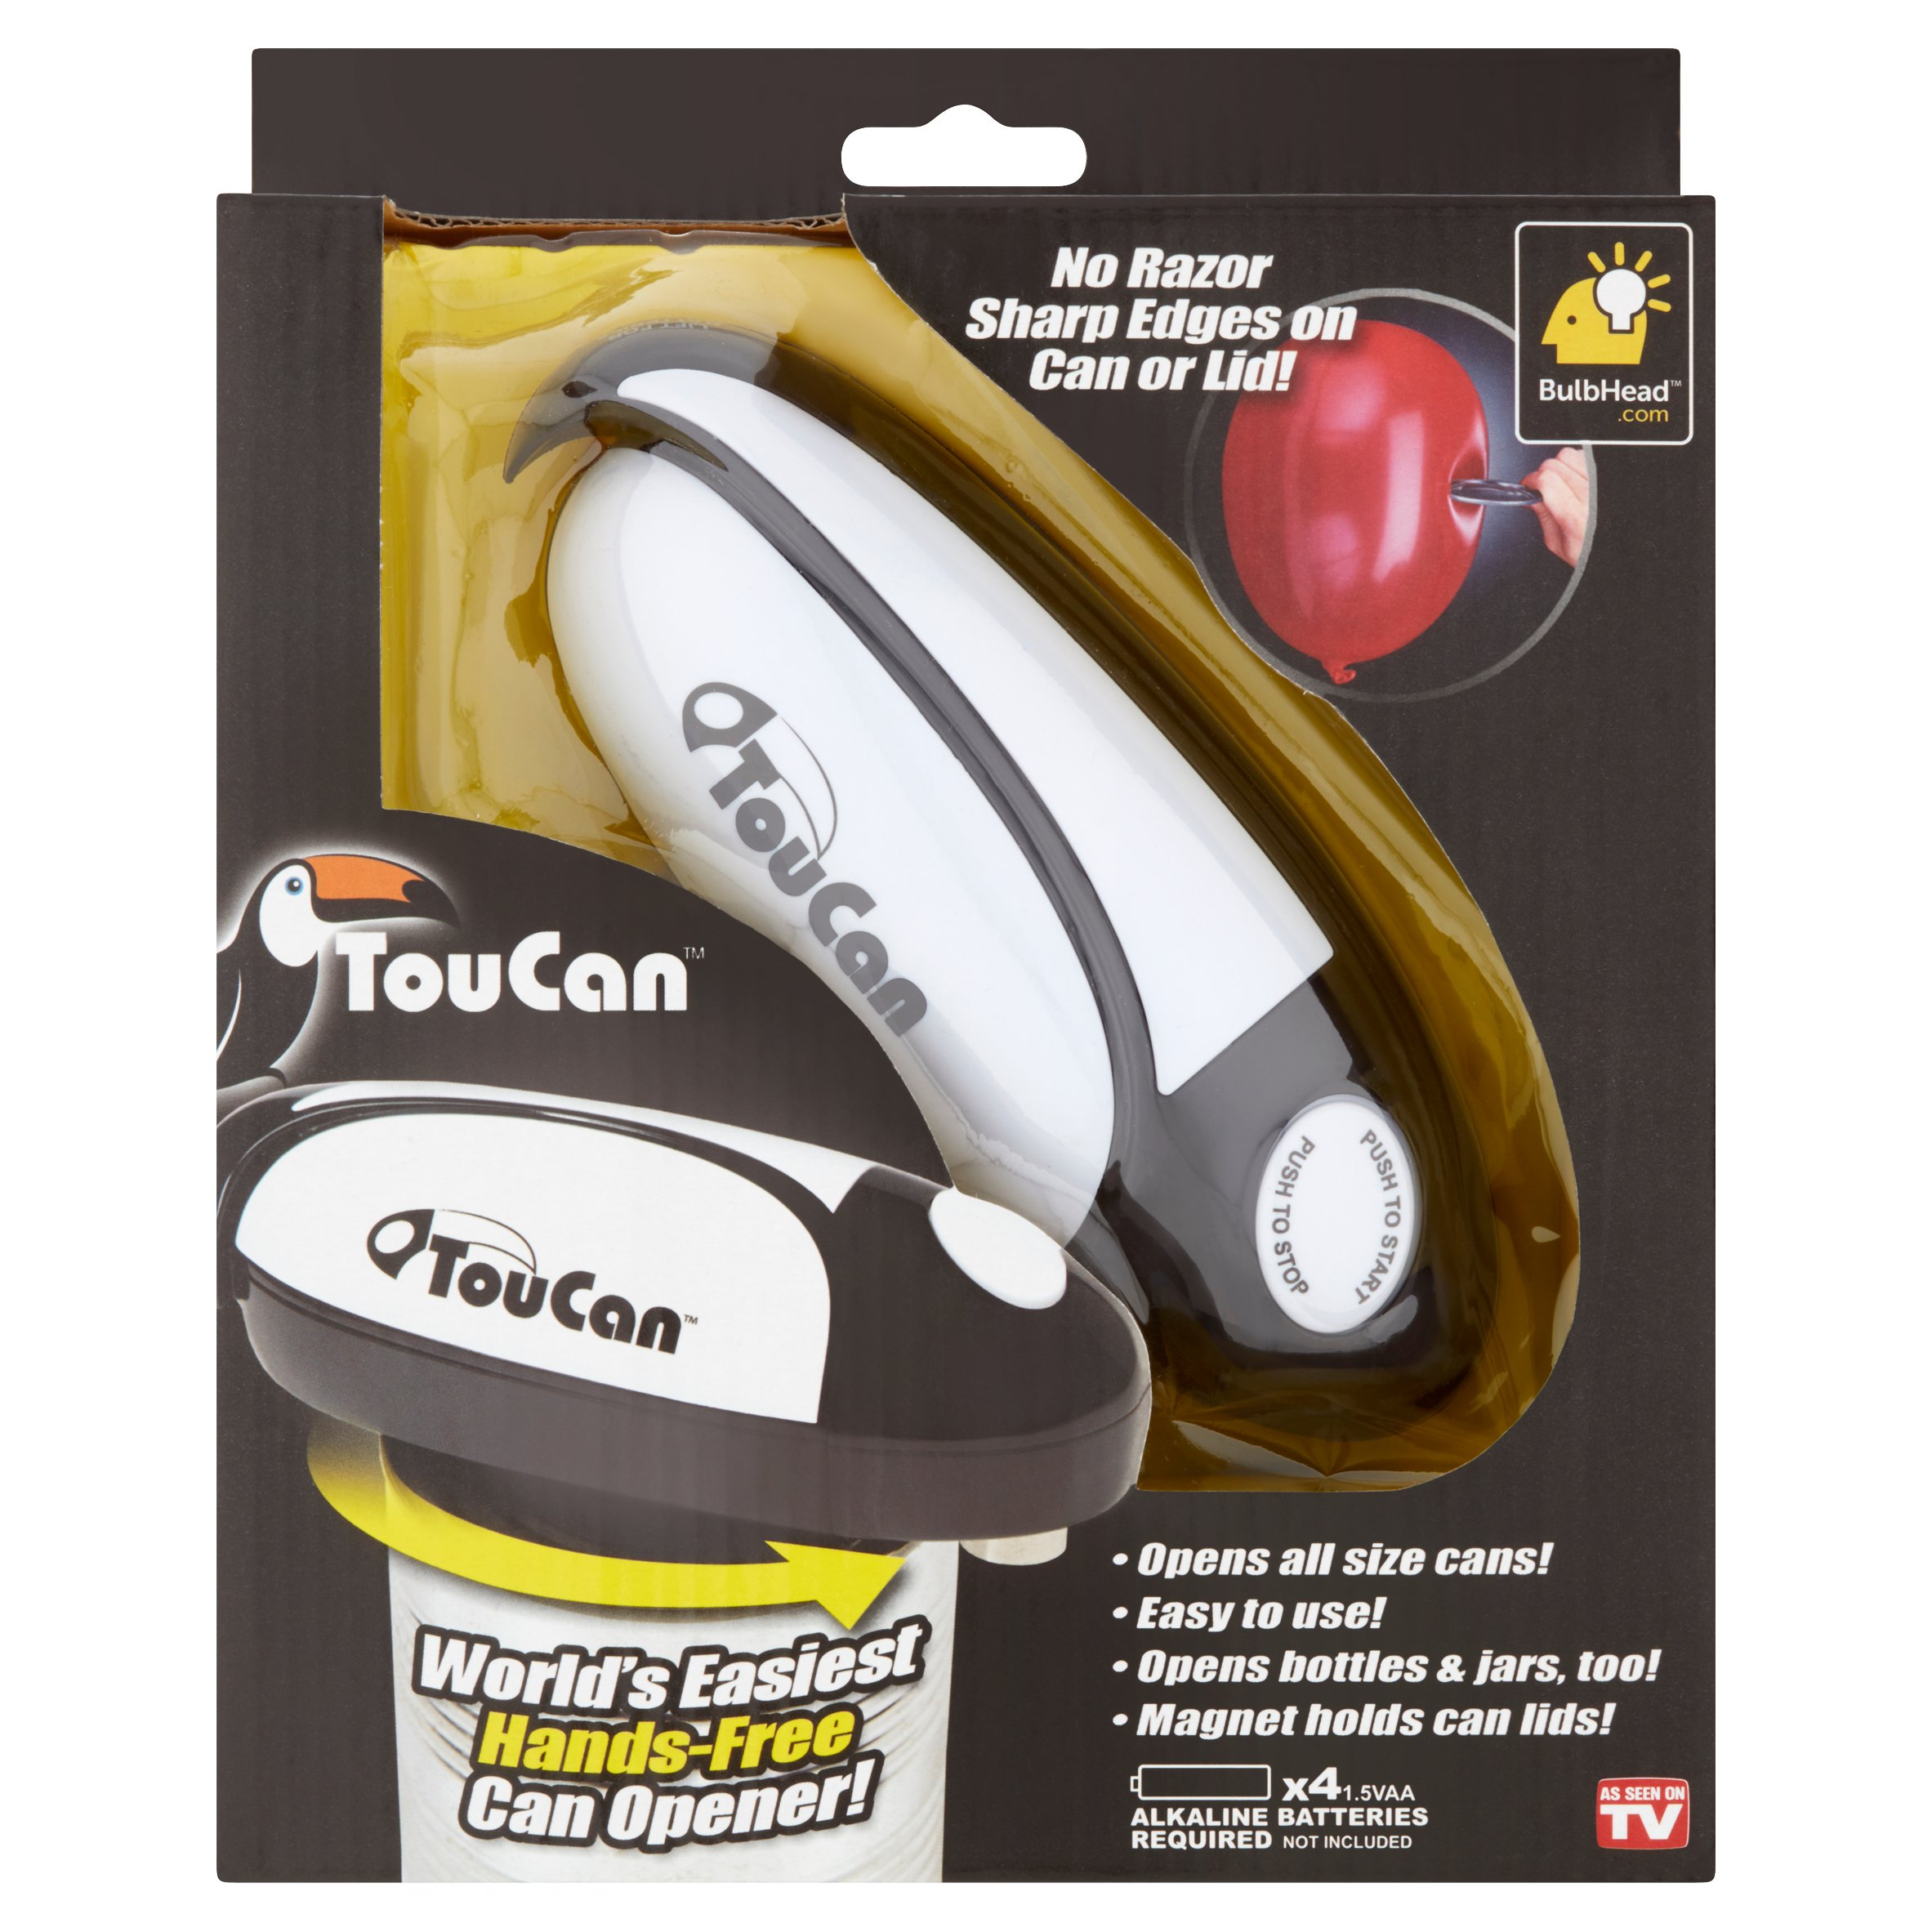 Toucan World's Easiest Hands-Free Can Opener! by Telebrands